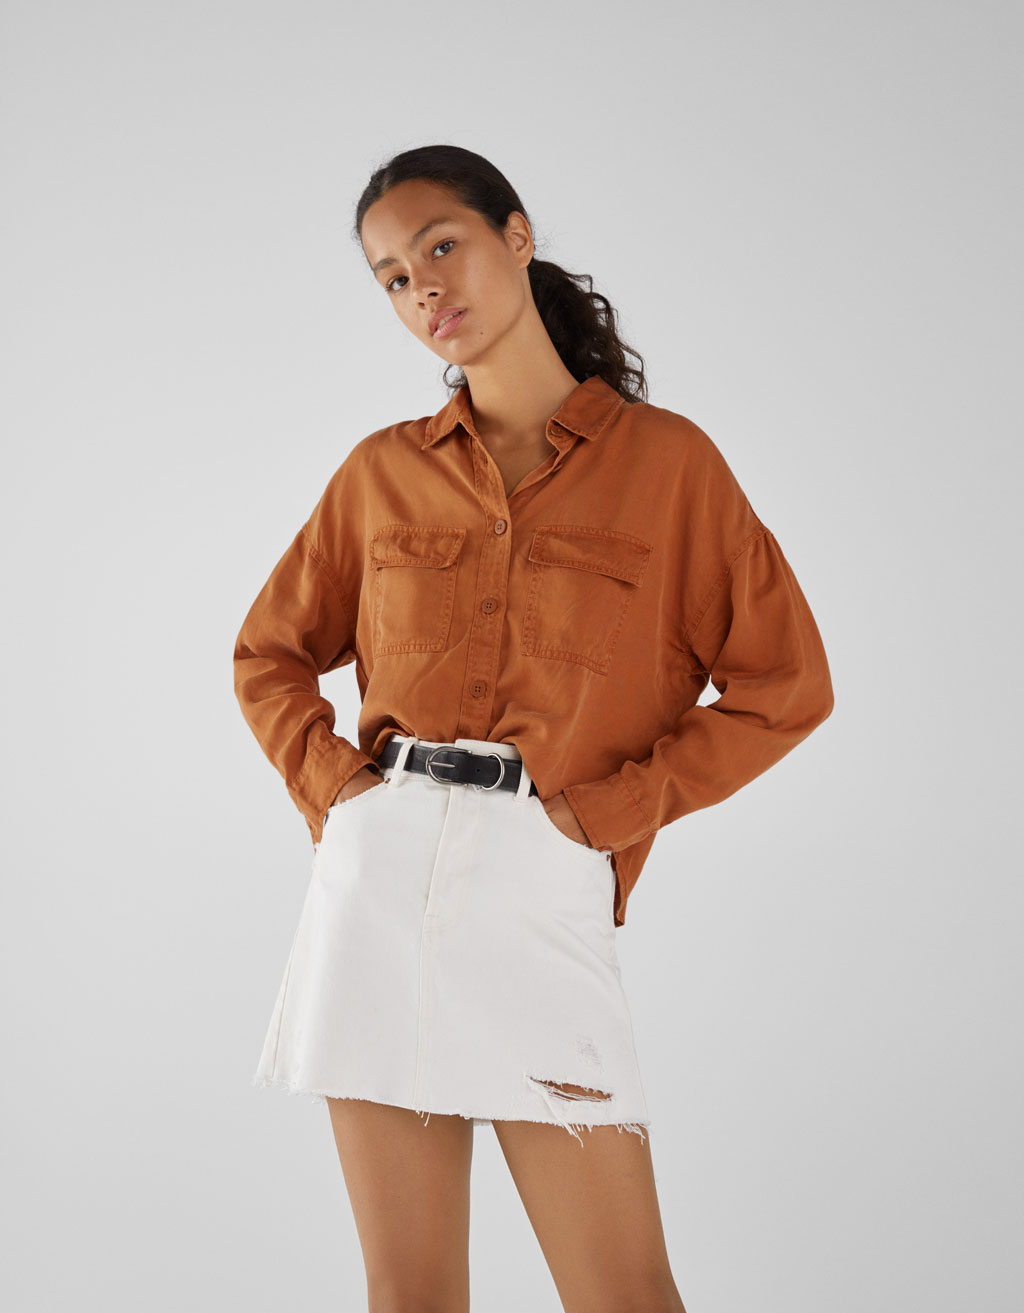 Embroidered Tencel® shirt